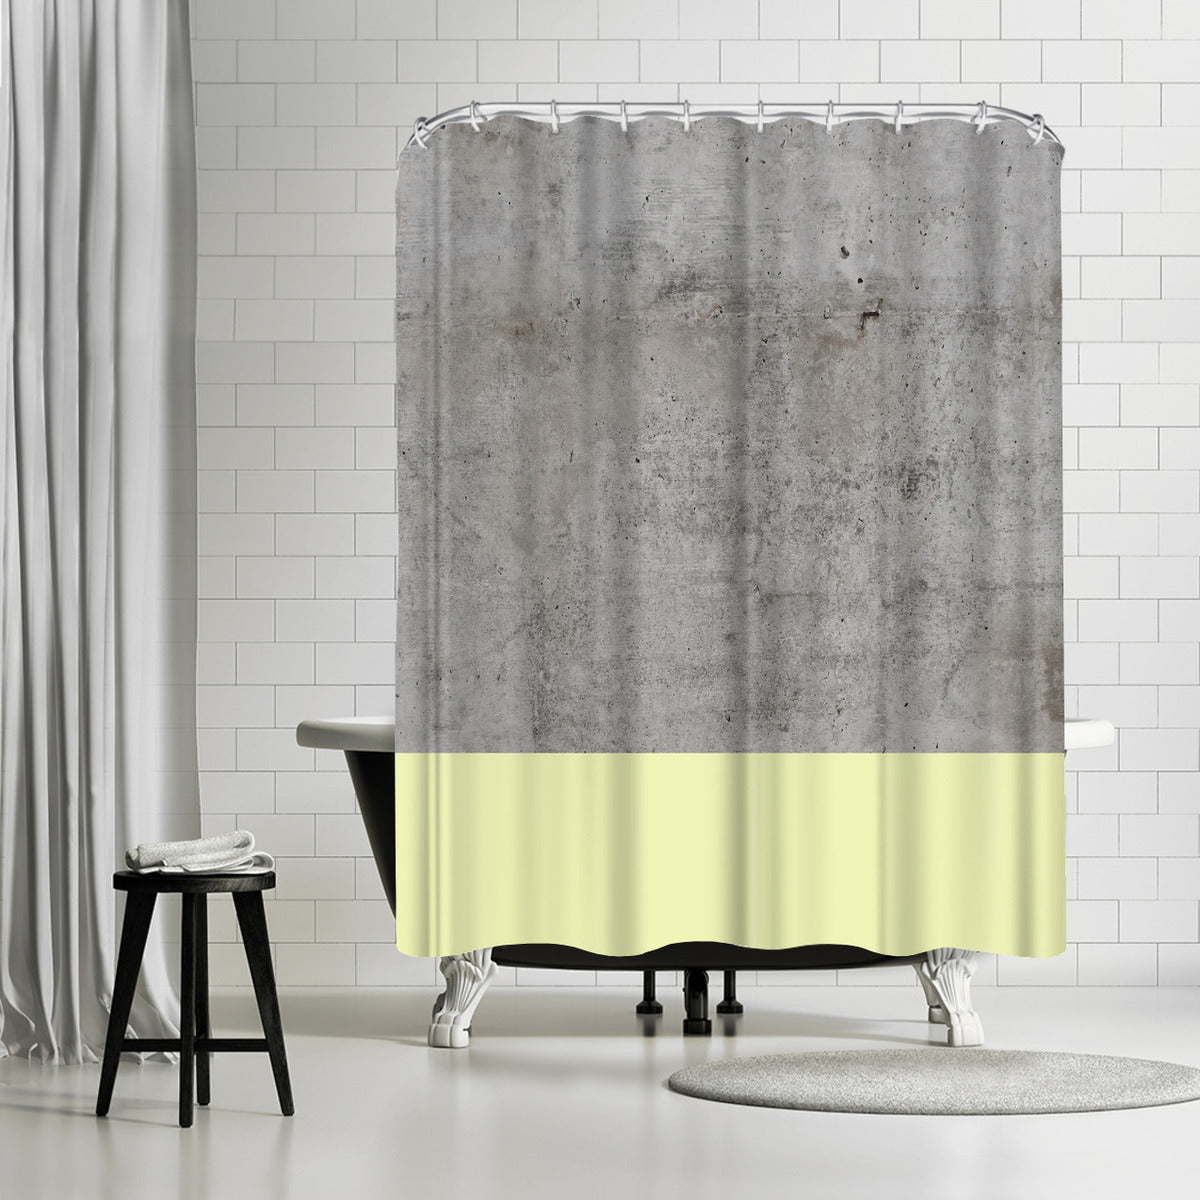 Yellow On Concrete by Emanuela Carratoni Shower Curtain